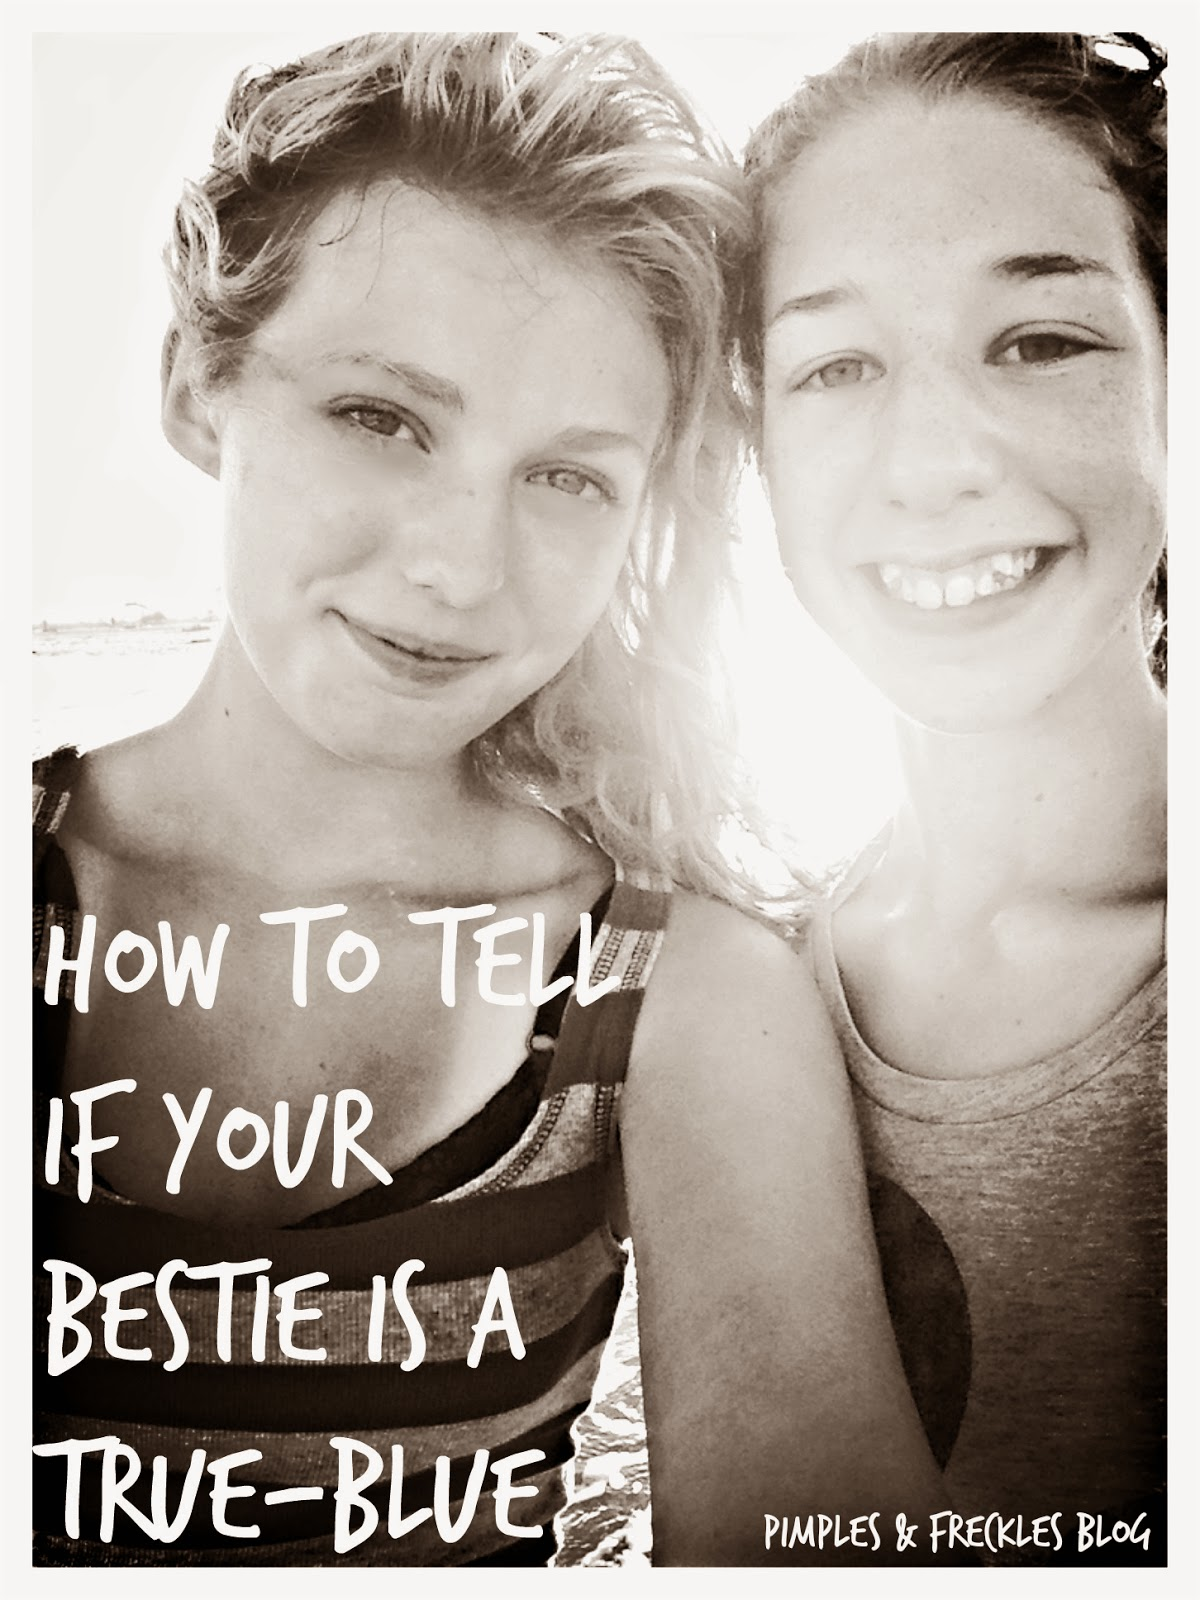 Is Your Best Friend Worthy of the Title? Find out! http://pimplesandfreckles.blogspot.com/